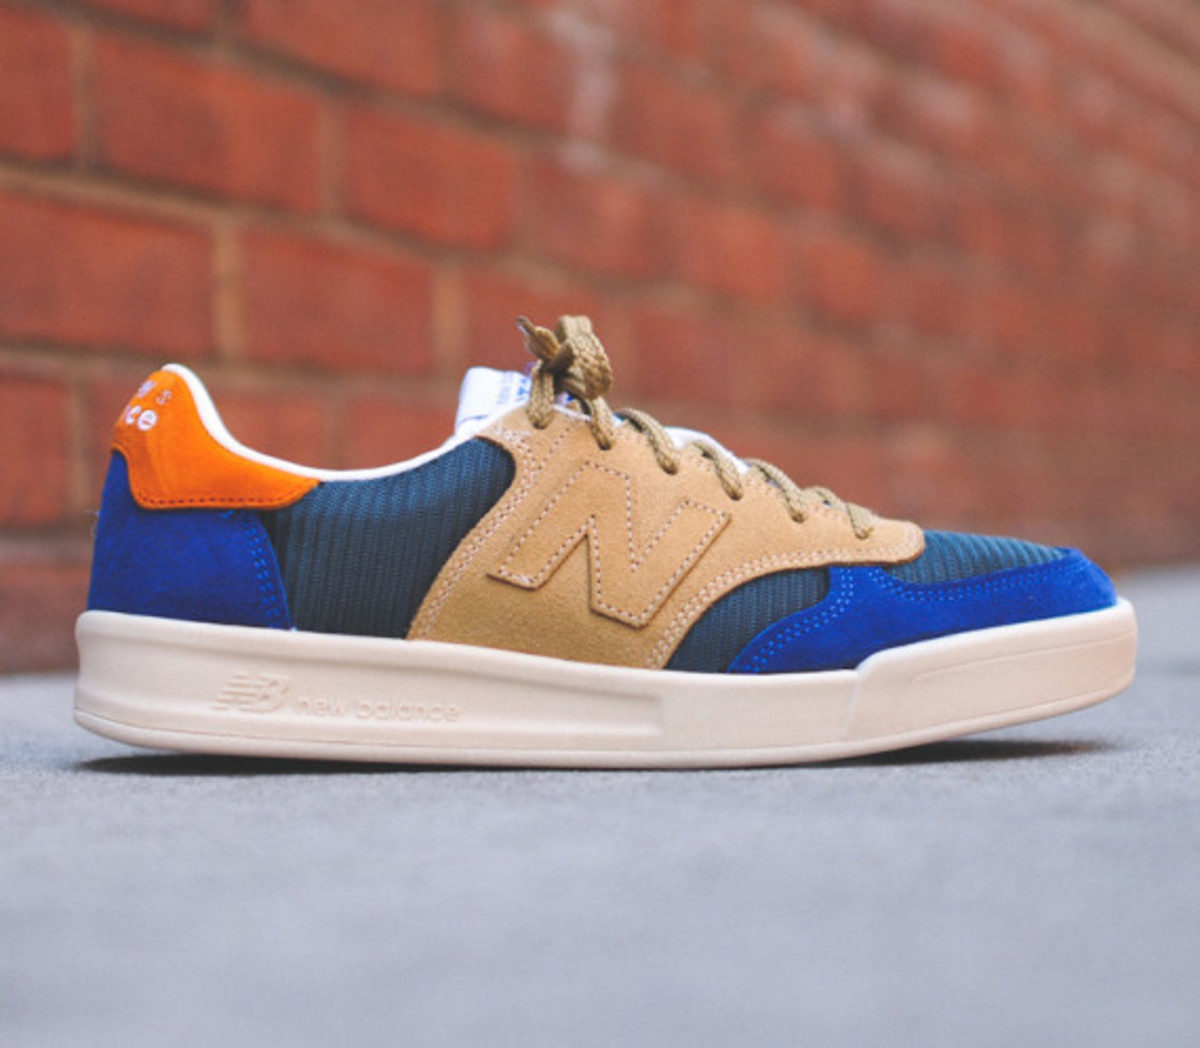 New Balance x 24 Kilates x SneakersNStuff x Hanon x Firmament - CT300 Collection | Available - 2